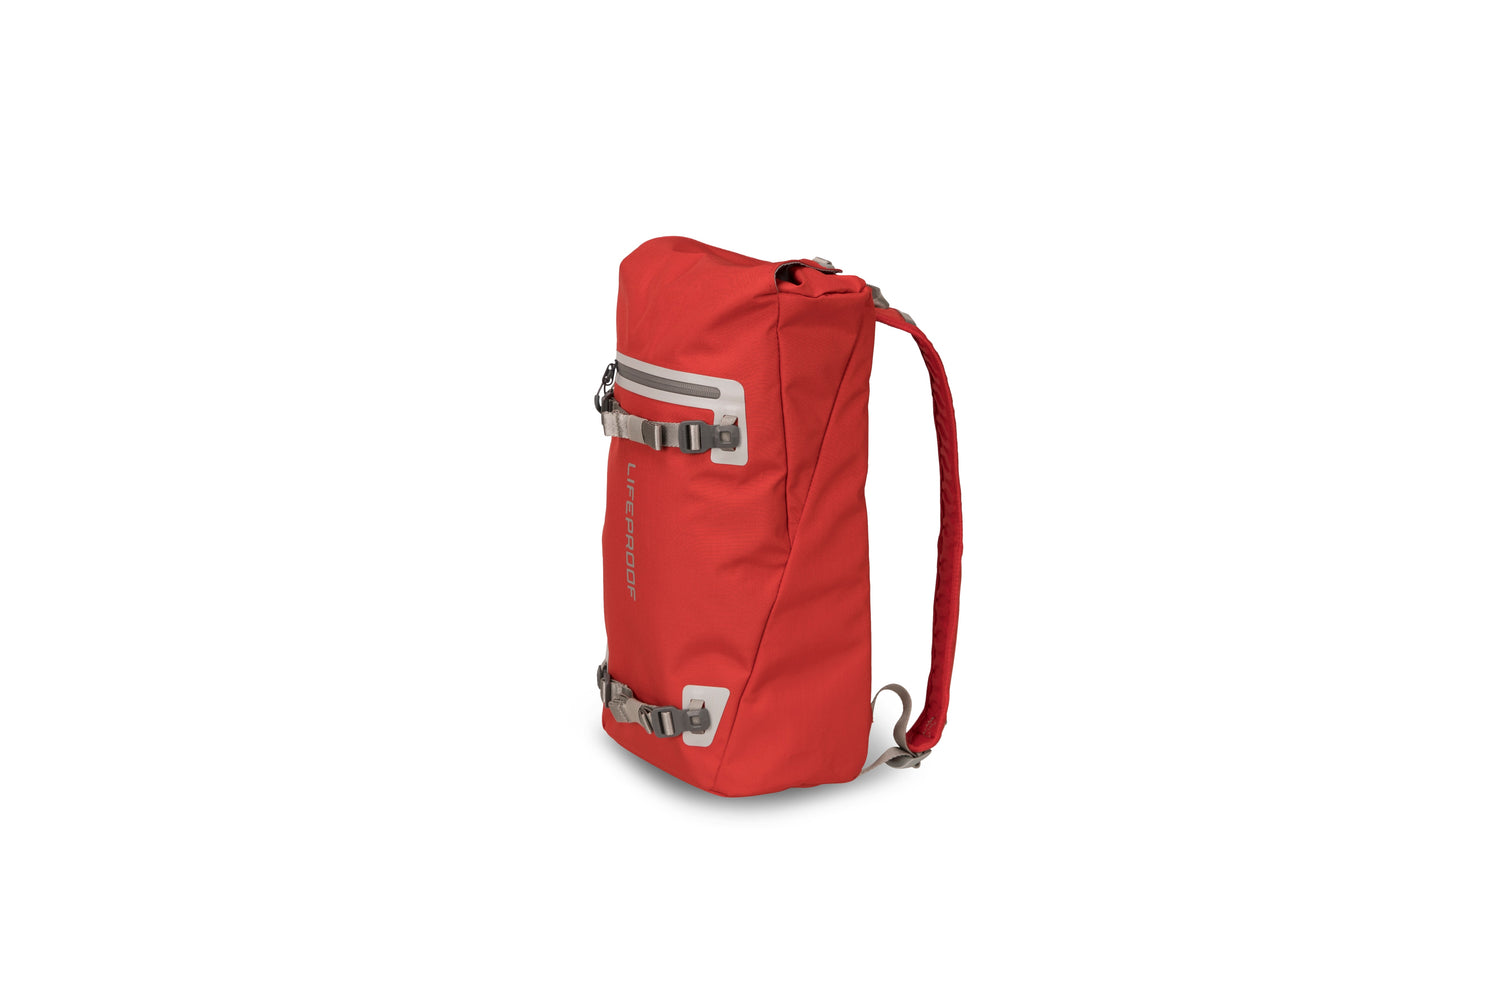 LifeProof Quito 18 Liter Outdoor Backpack for Travel and Hiking - Rush Red (New, Open Box)